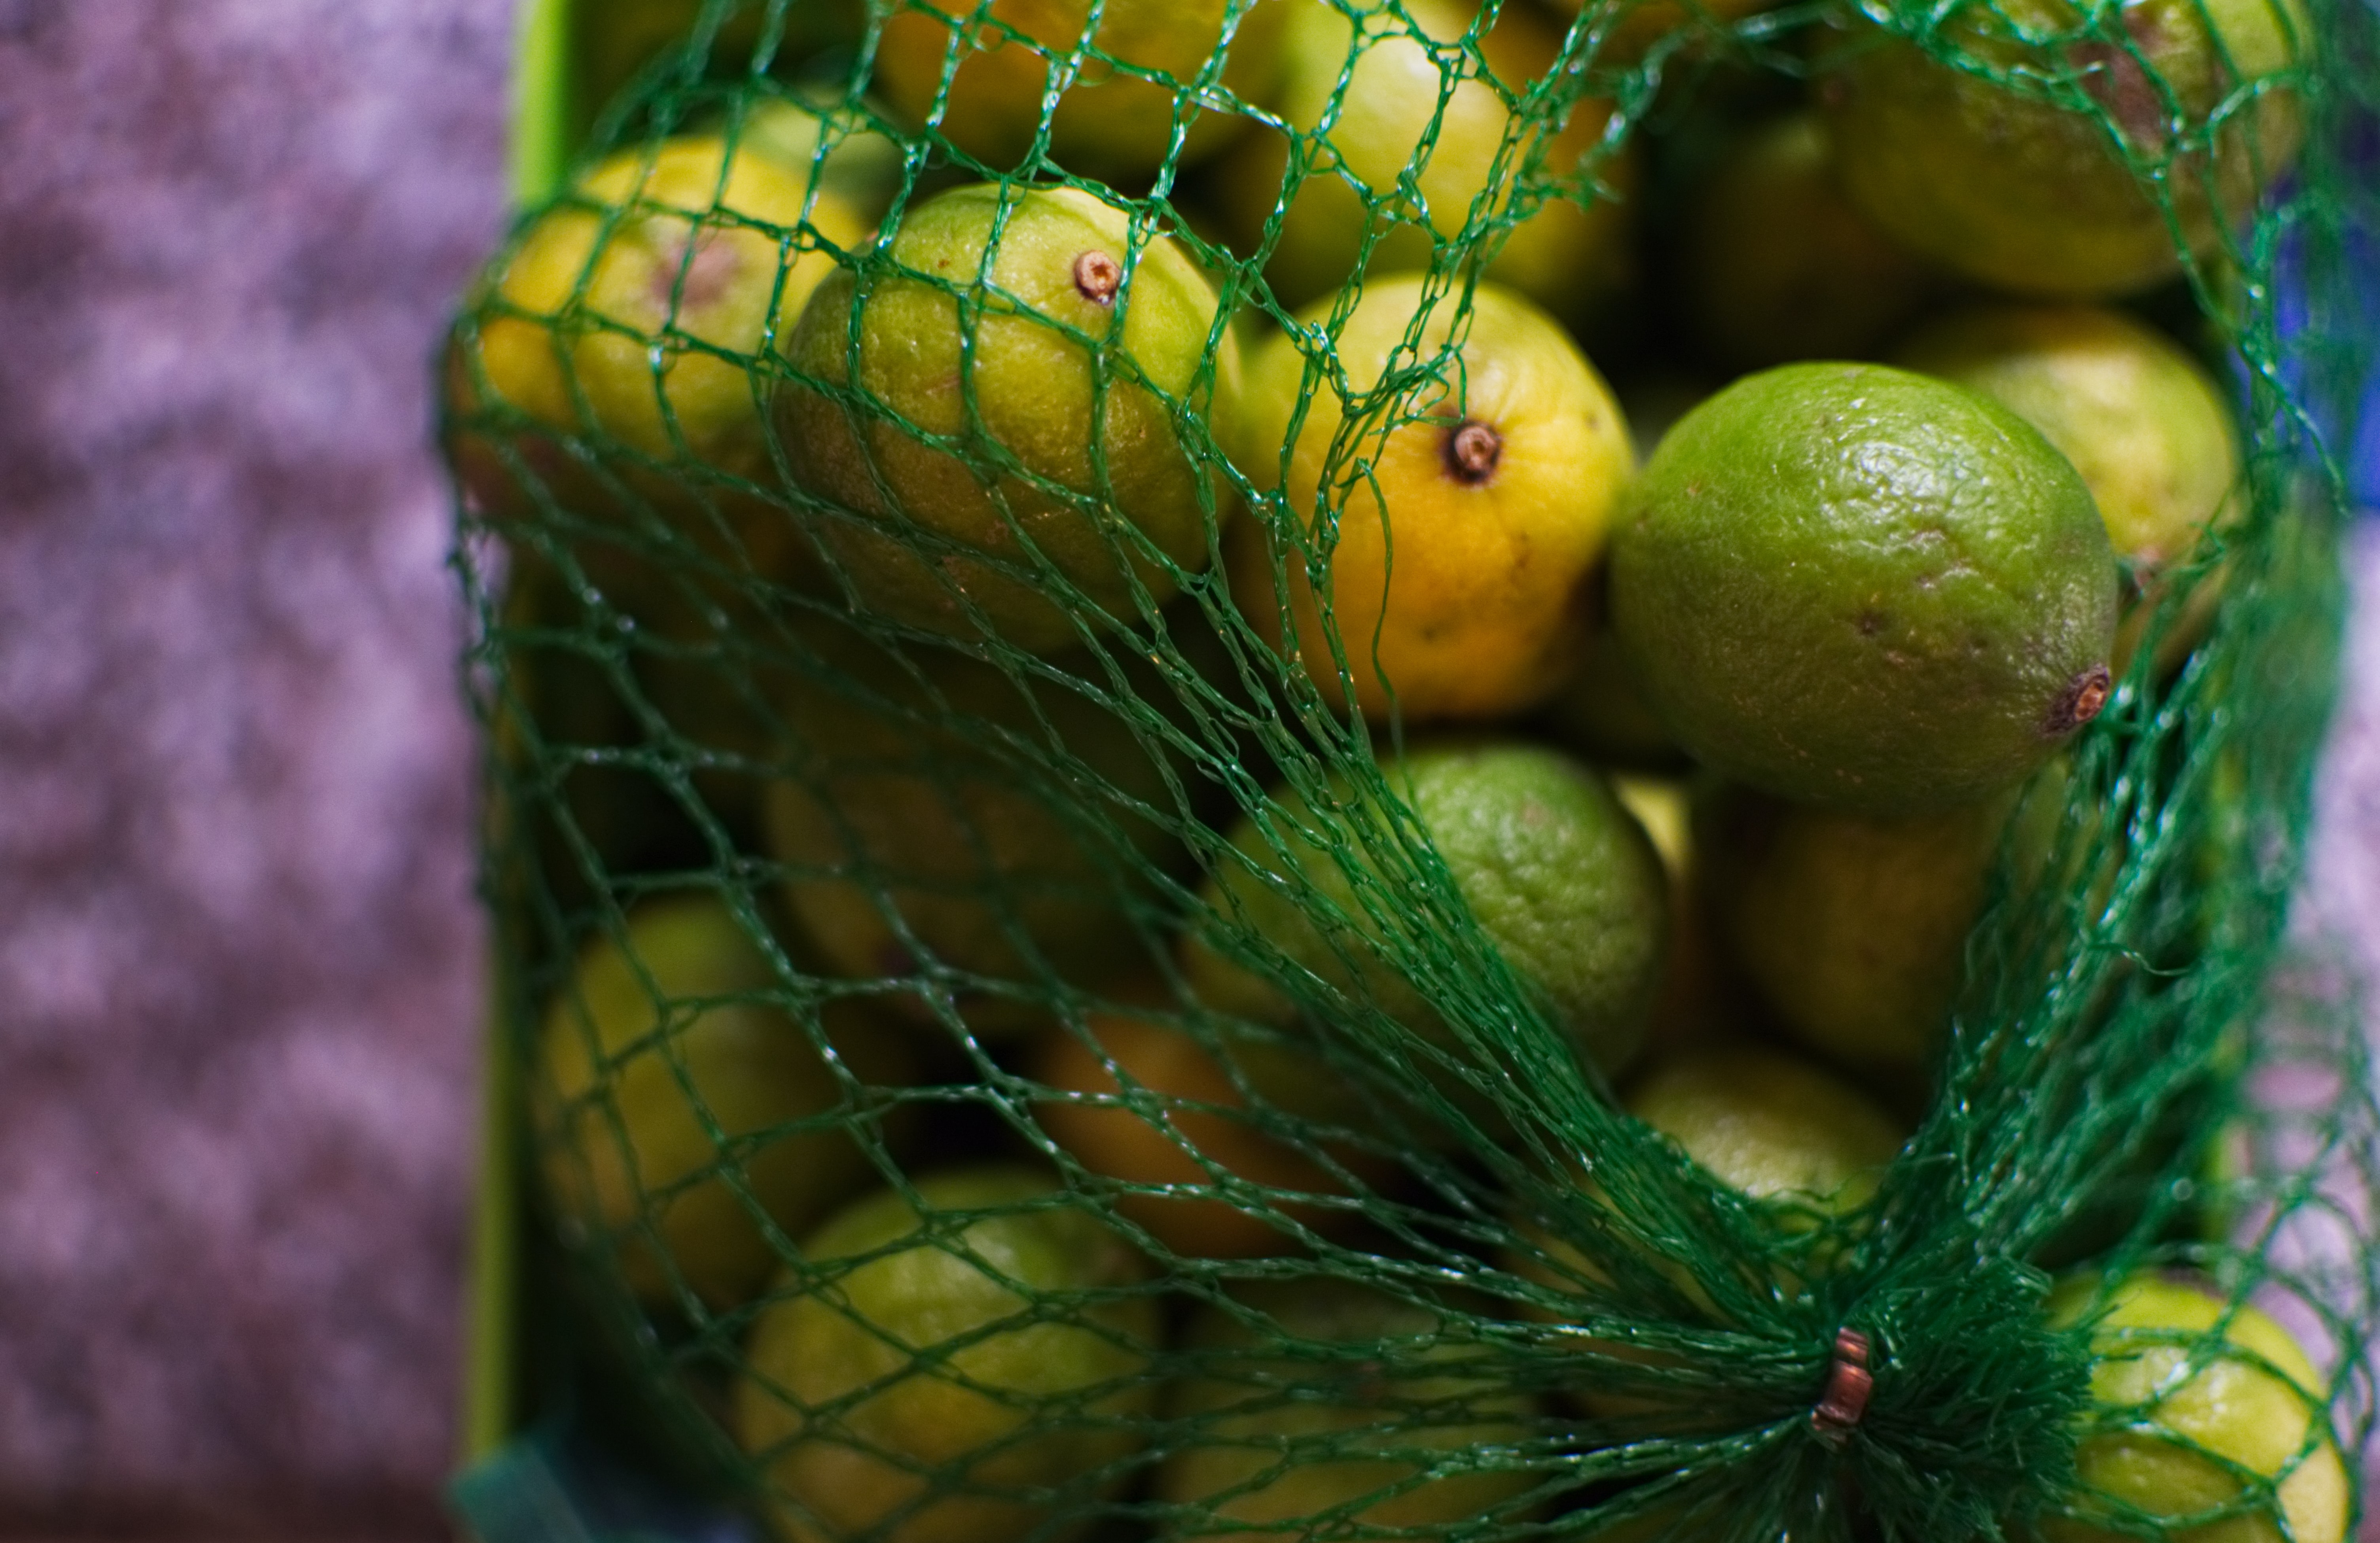 calamondin fruits in green mesh container